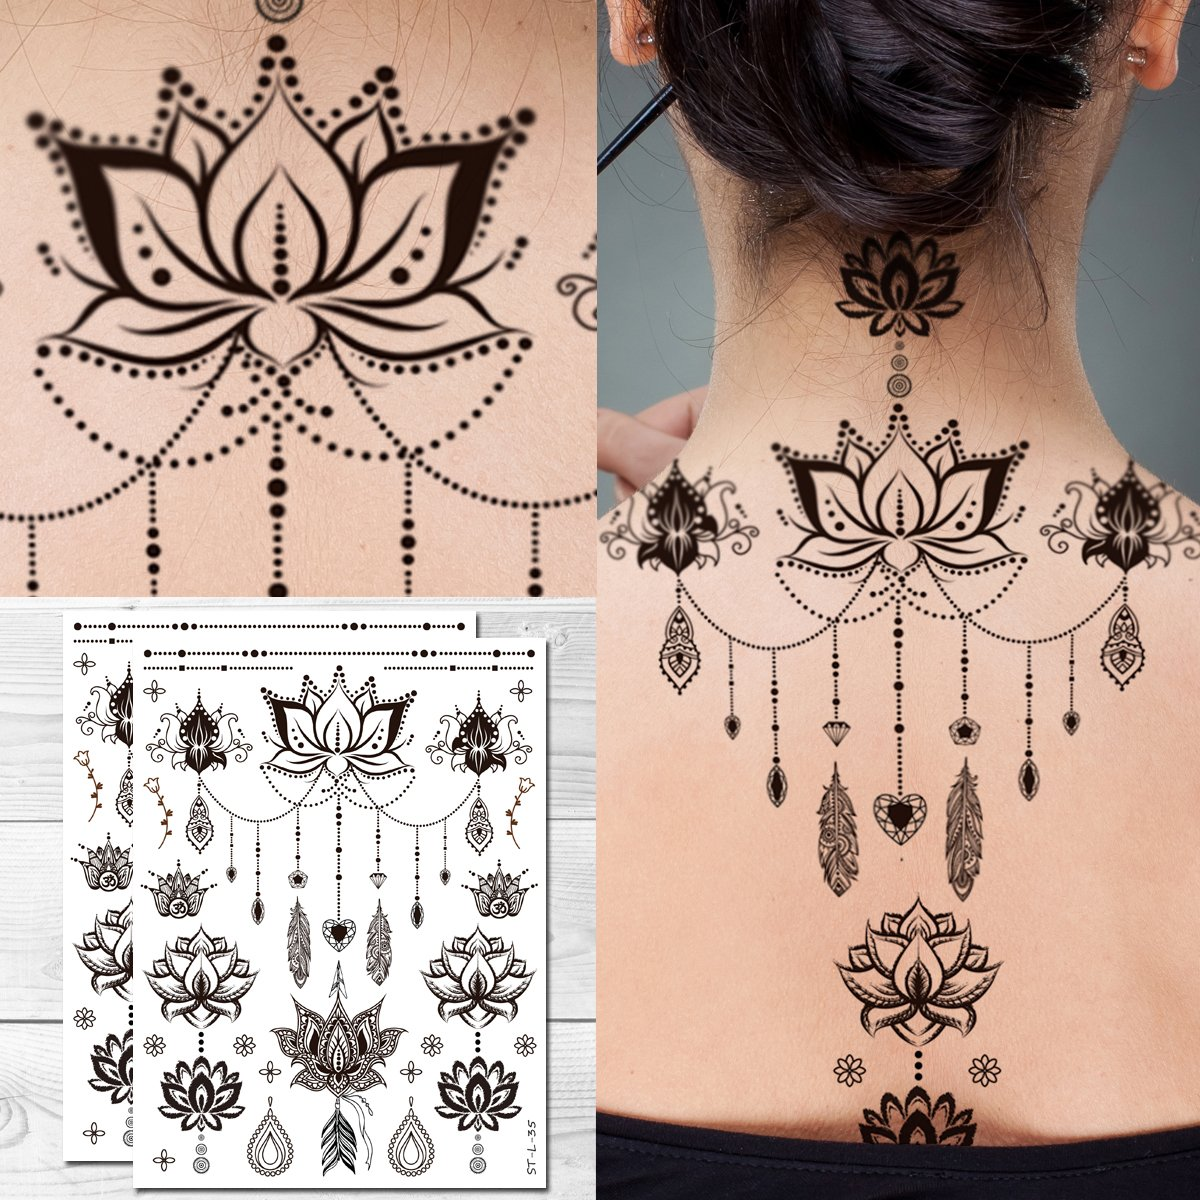 Supperb Temporary Tattoos Mandala Floral Lotus Feather Flower Jewelry Bohemian Tattoo Set Of 2